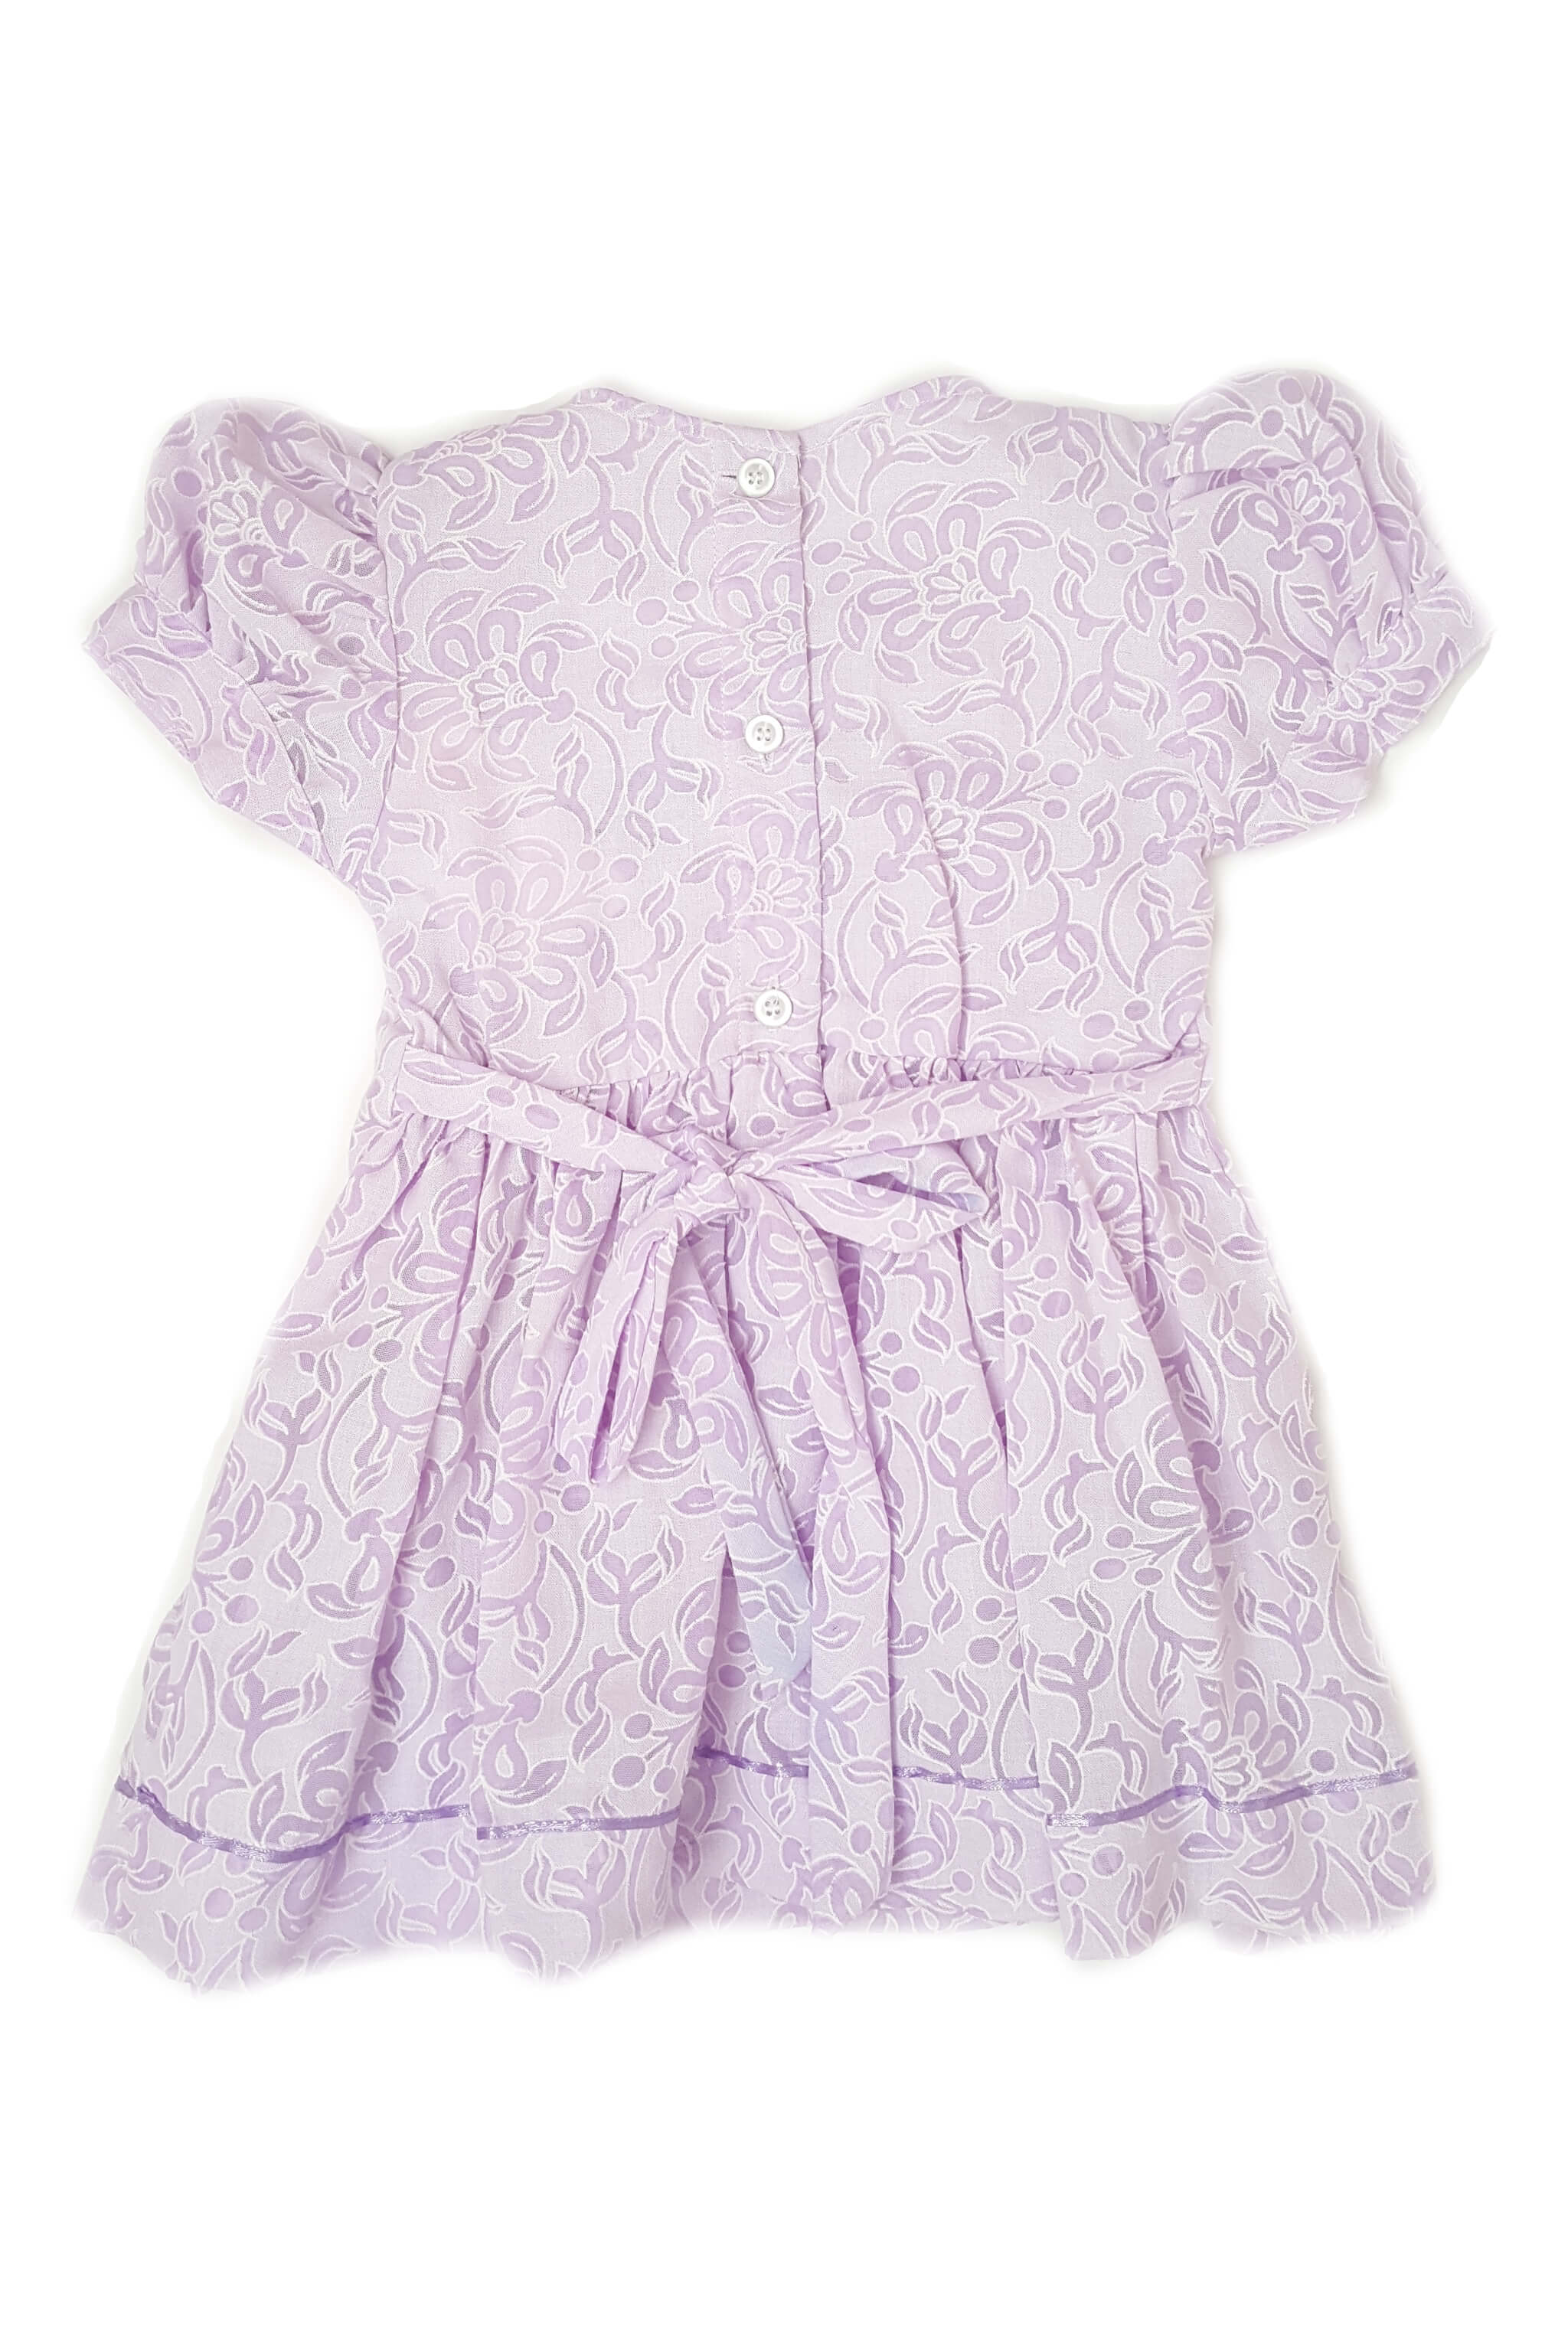 Back of lavender floral print dress with hand-smocked bodice and soft purple satin trim with button back and sash for baby girls